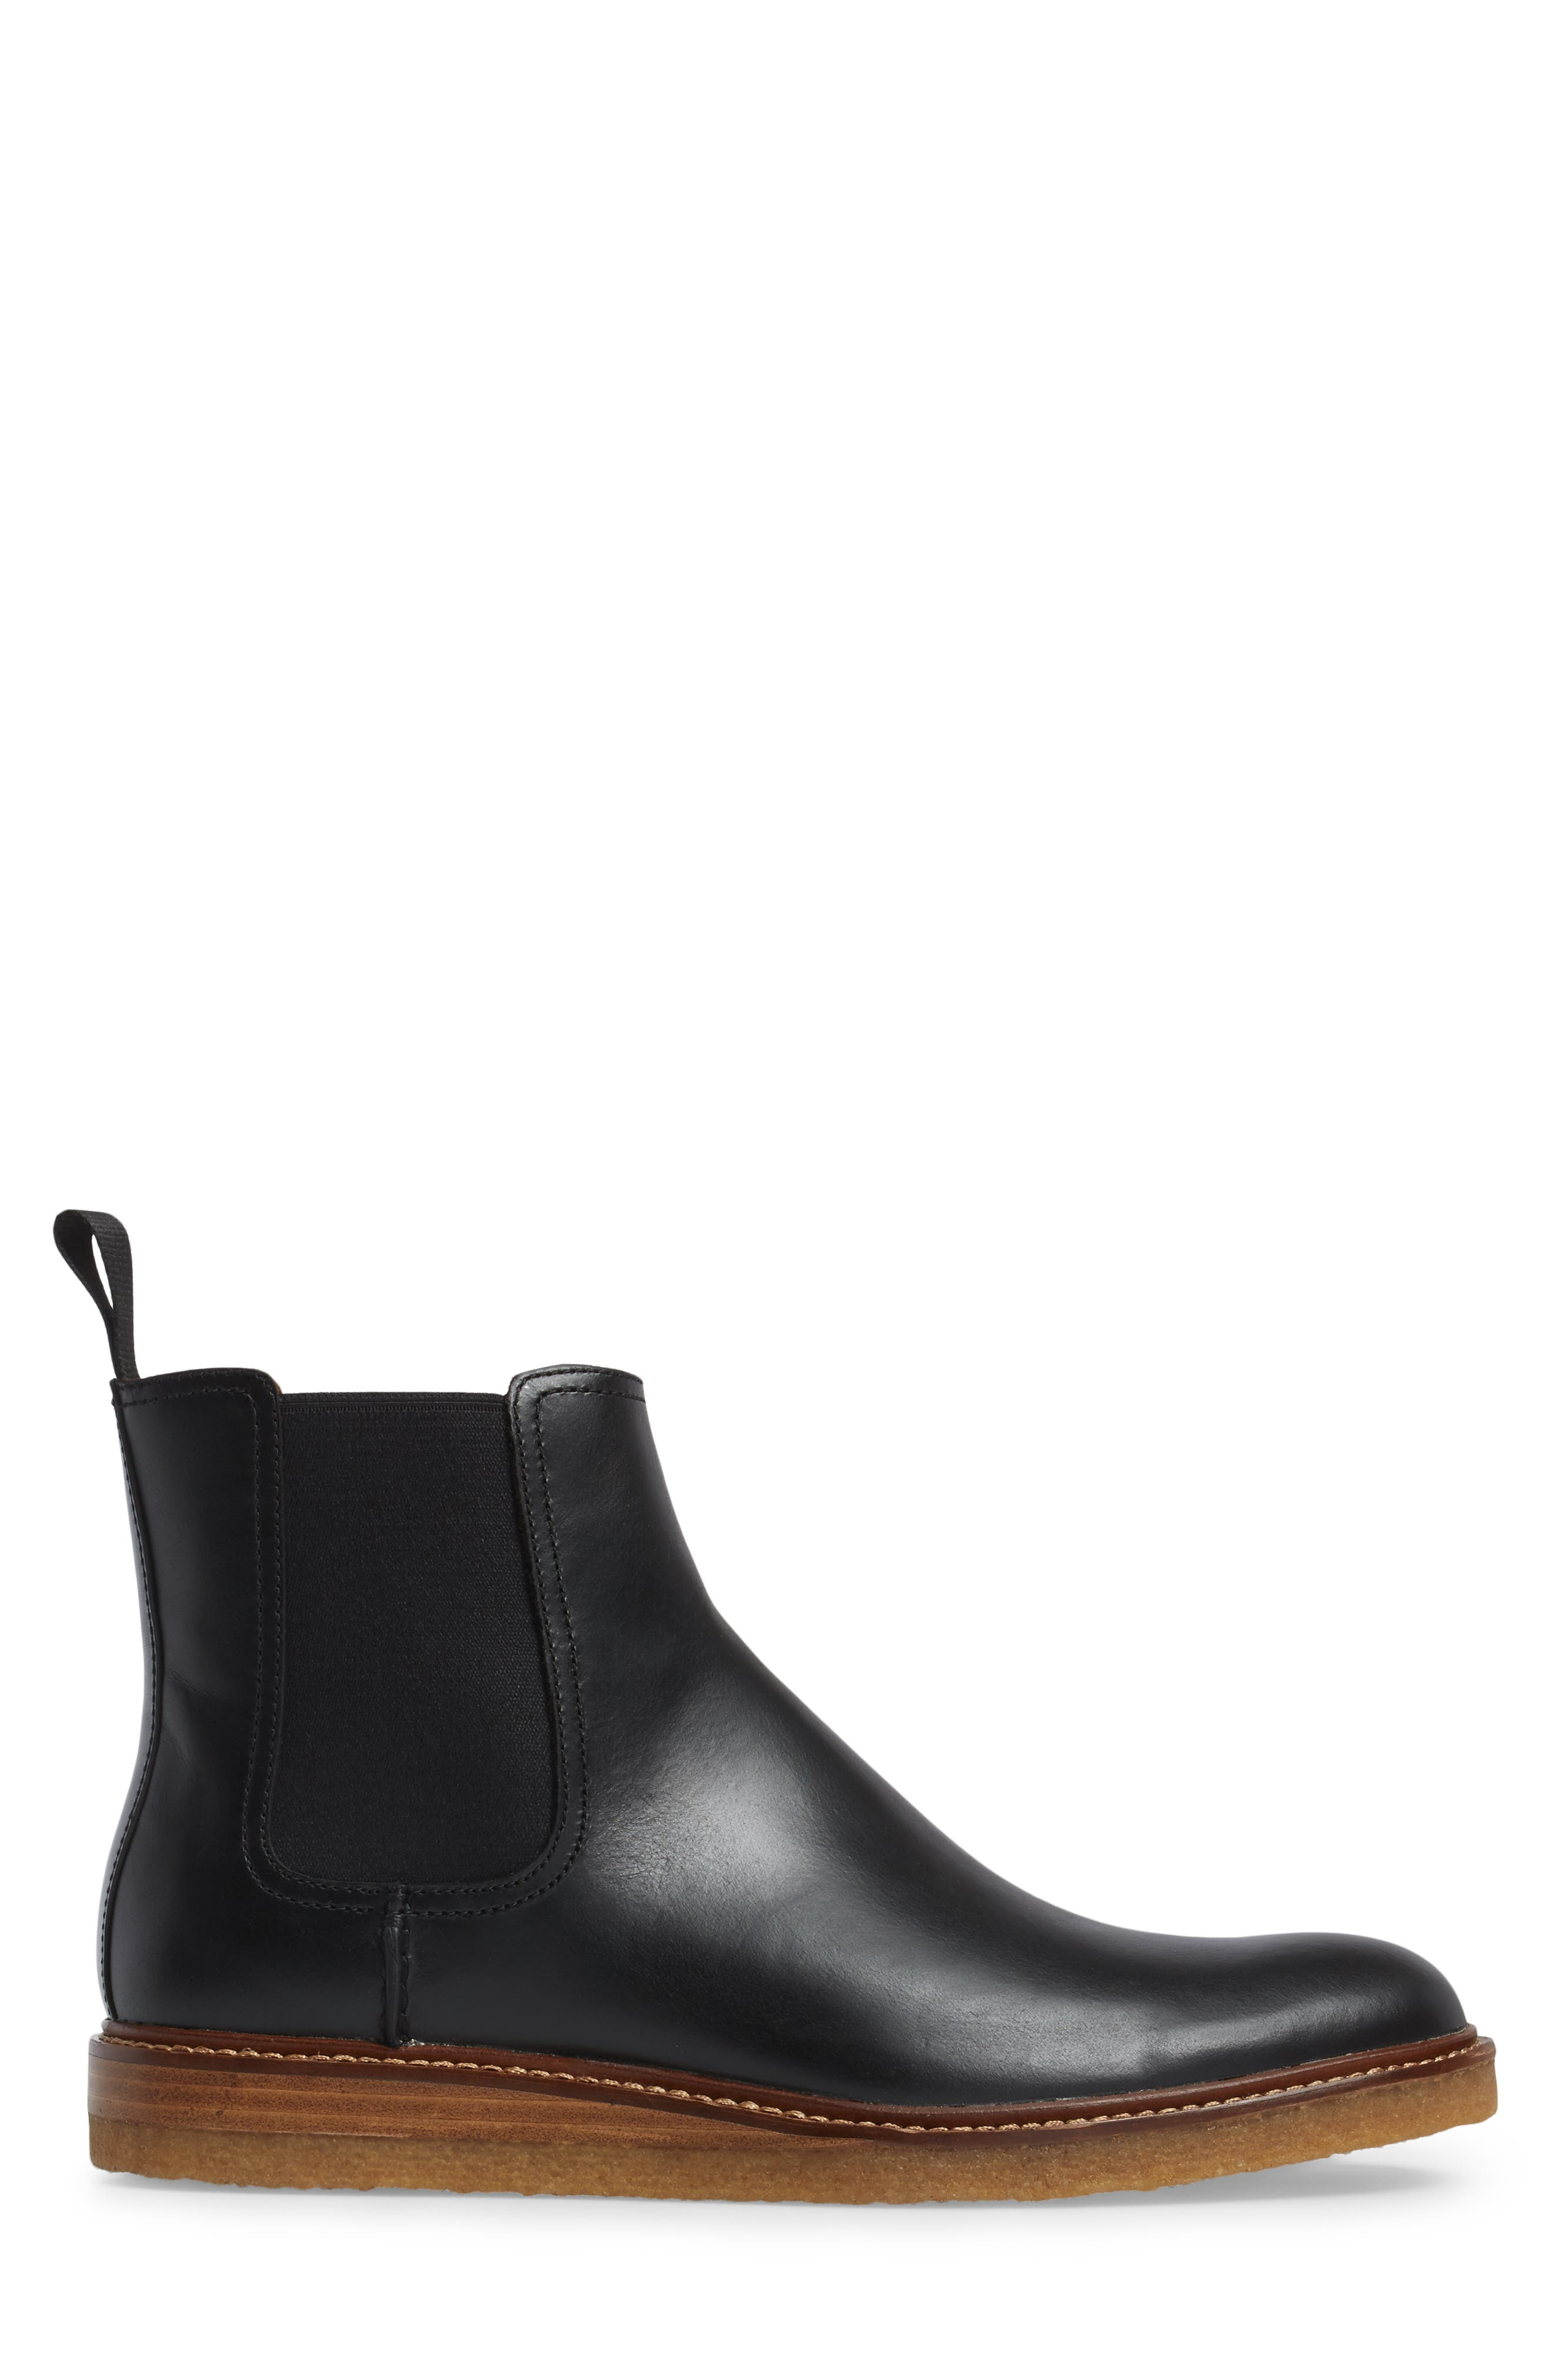 Leather Chelsea Boot,                             Alternate thumbnail 3, color,                             001